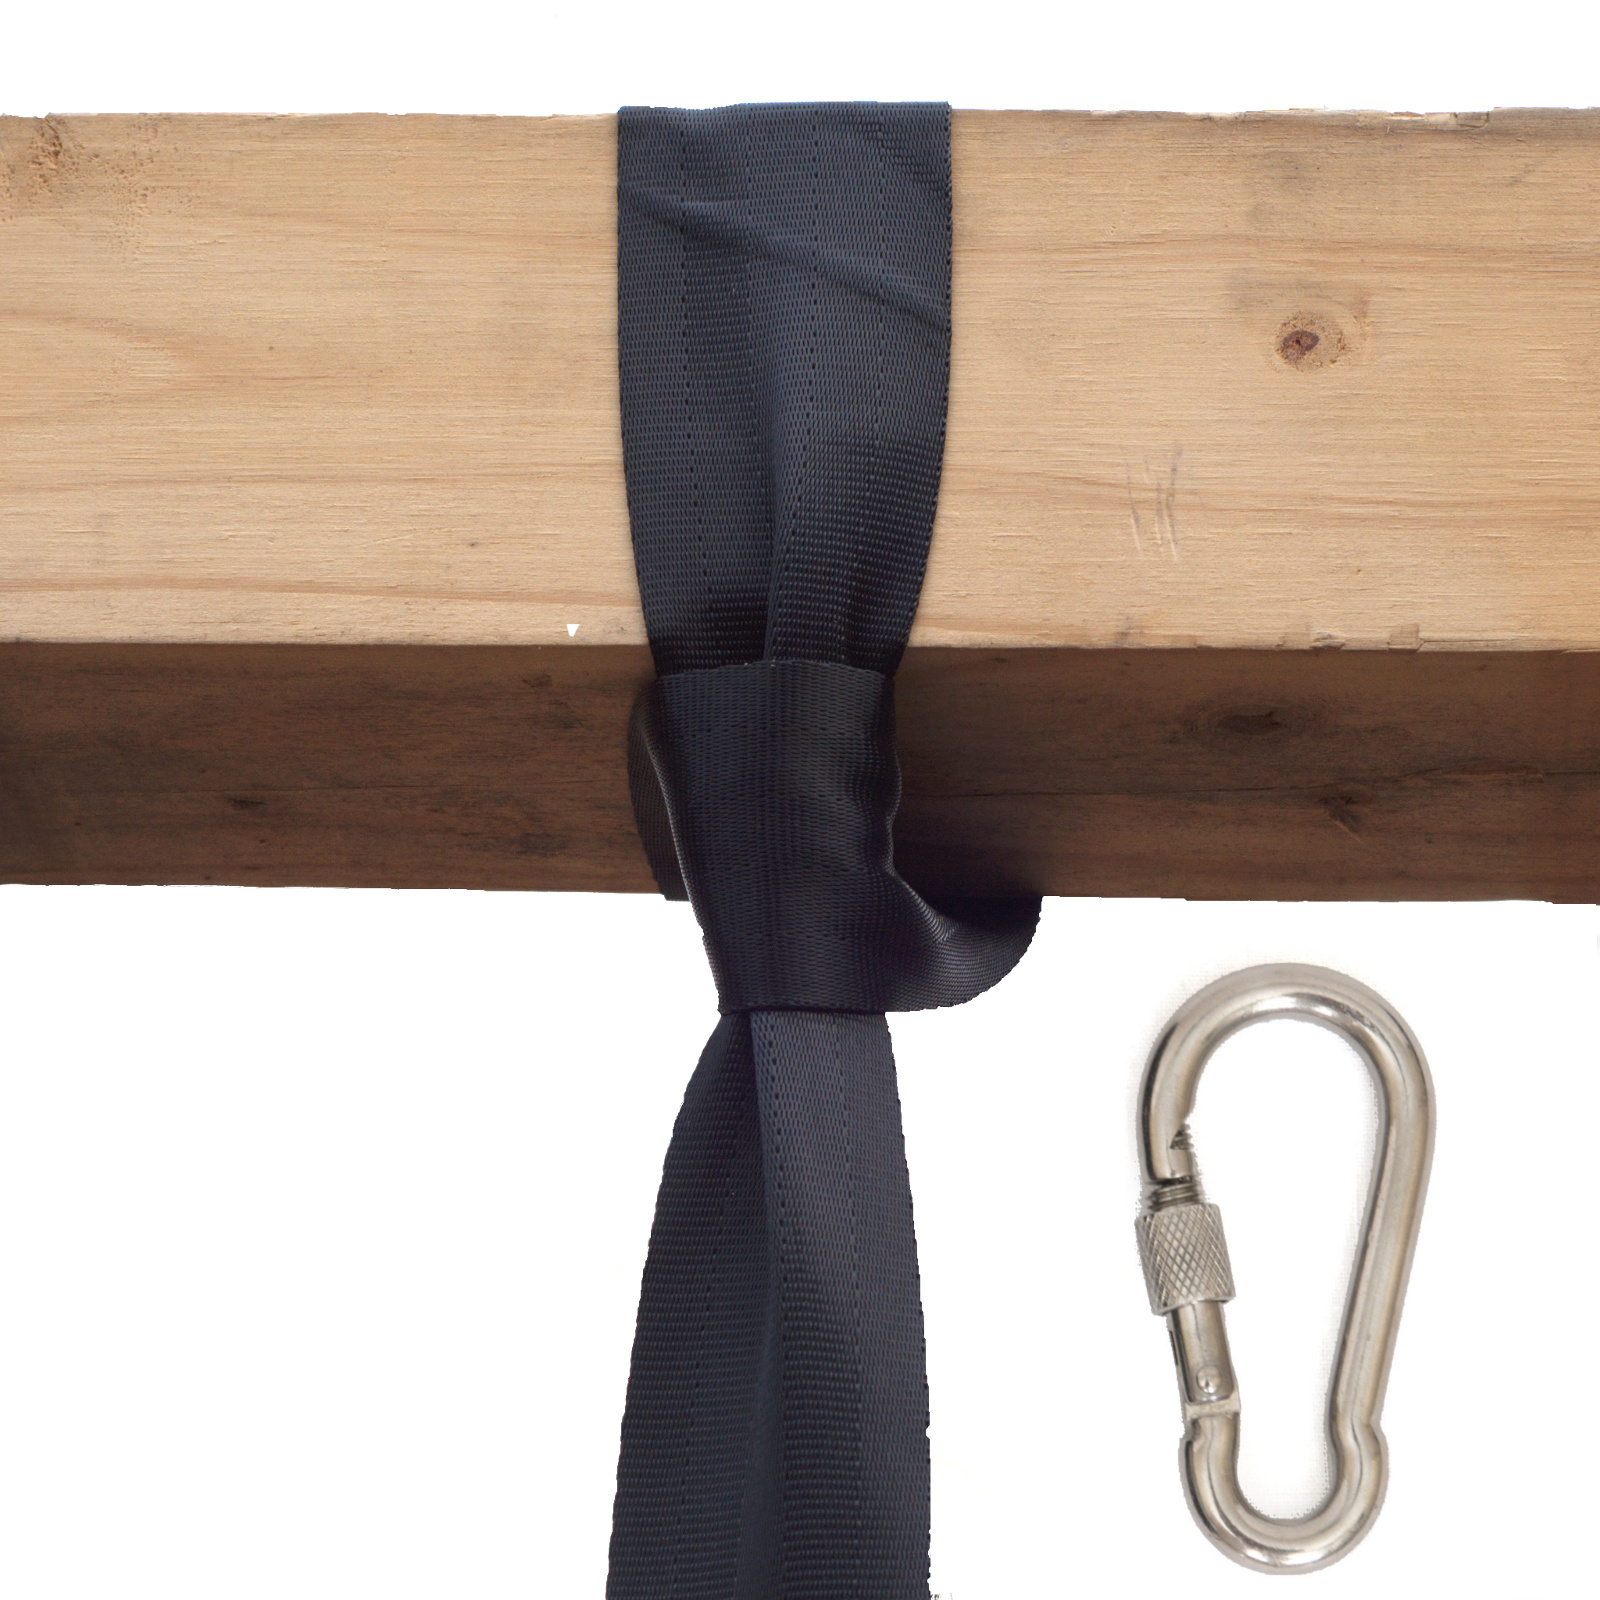 Swing Hanging Strap on Post With Carabiner